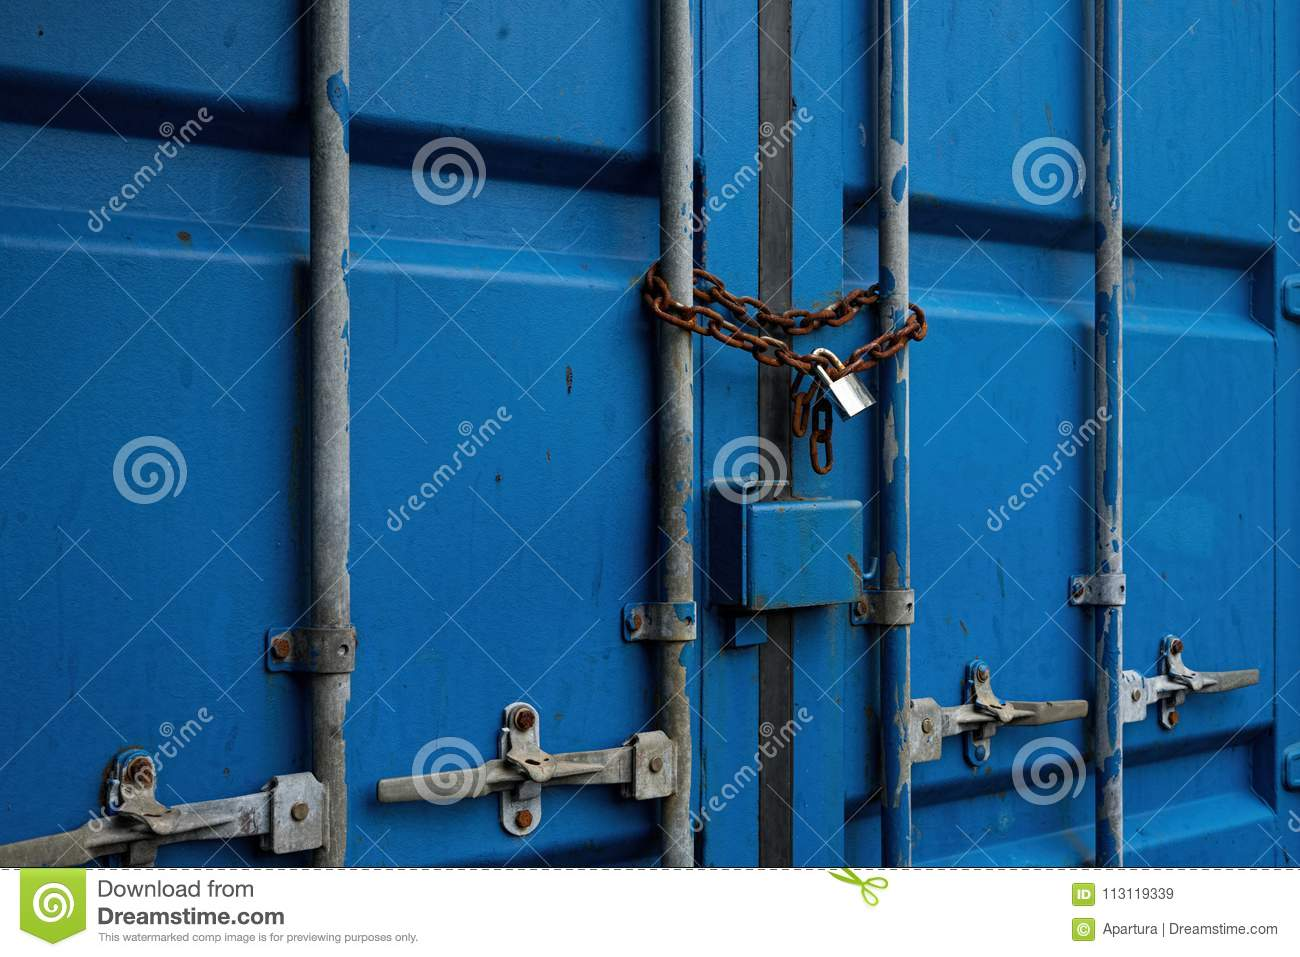 Container Door Stock Images - Download 4,944 Royalty Free Photos